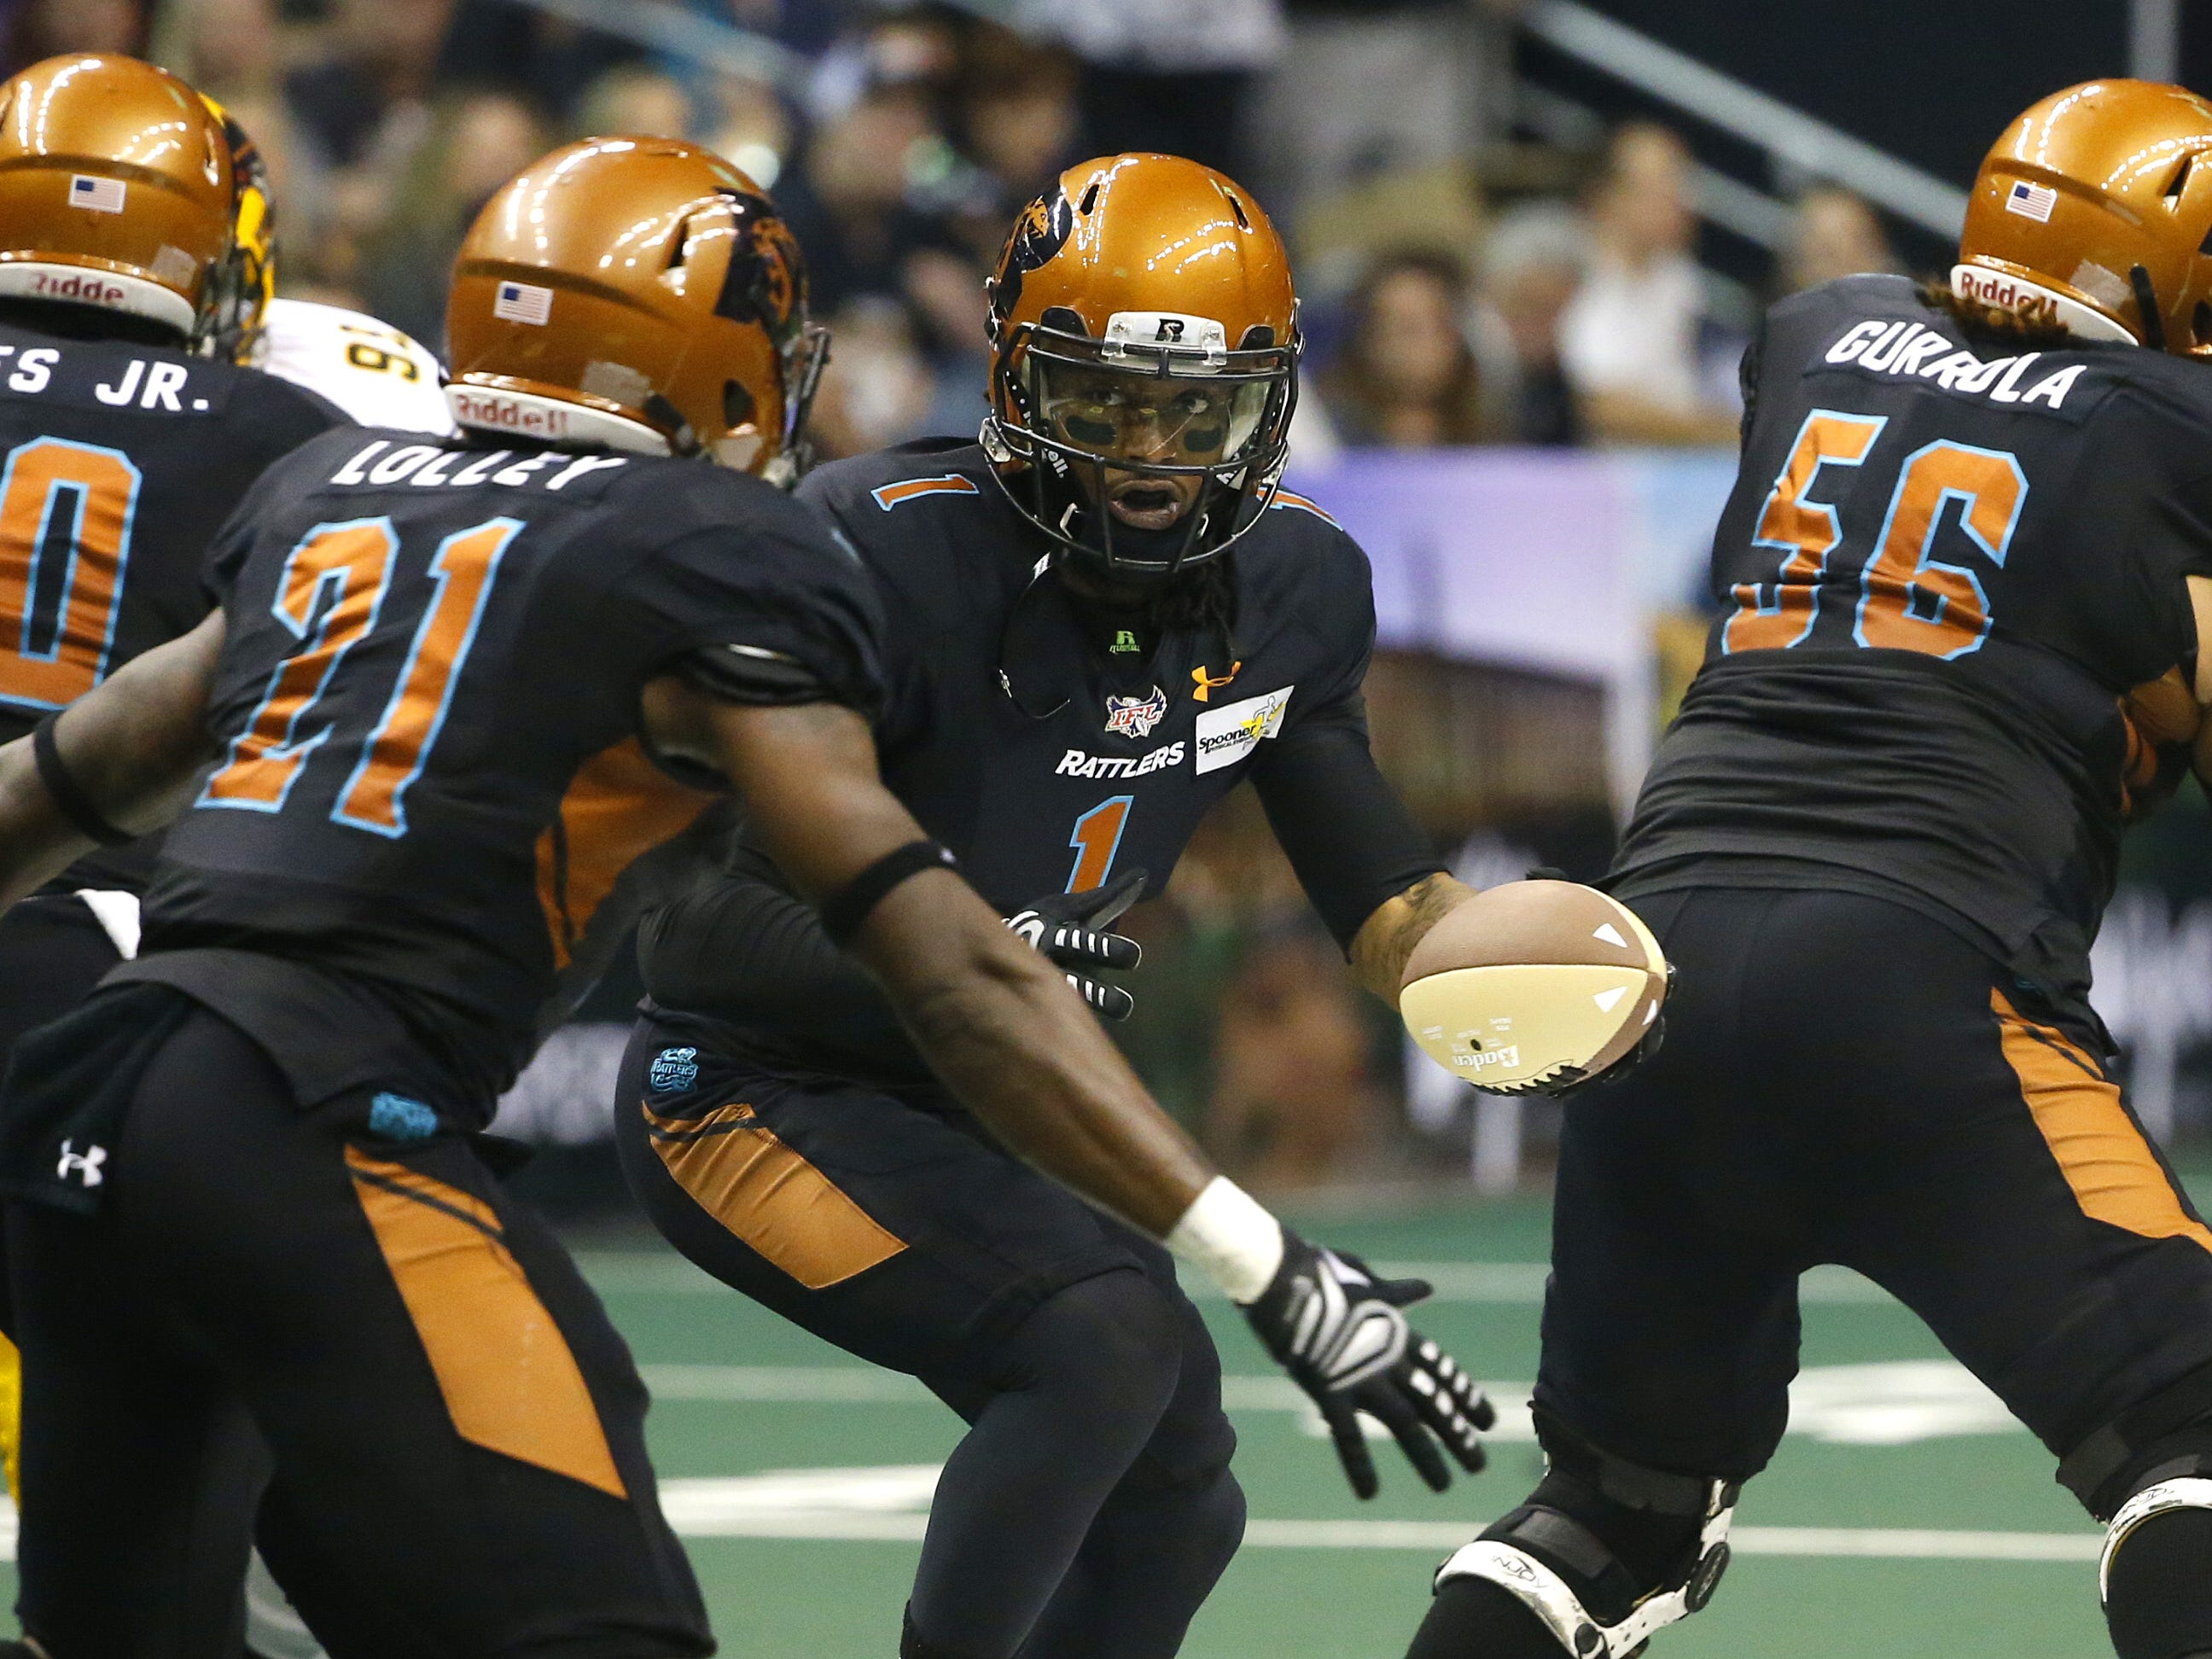 Rattlers' Verlon Reed Jr. (1) hands the ball off to Jabre Lolley (21) during the first half against the Sugar Skulls at Talking Stick Resort Arena in Phoenix, Ariz. on March 16, 2019.